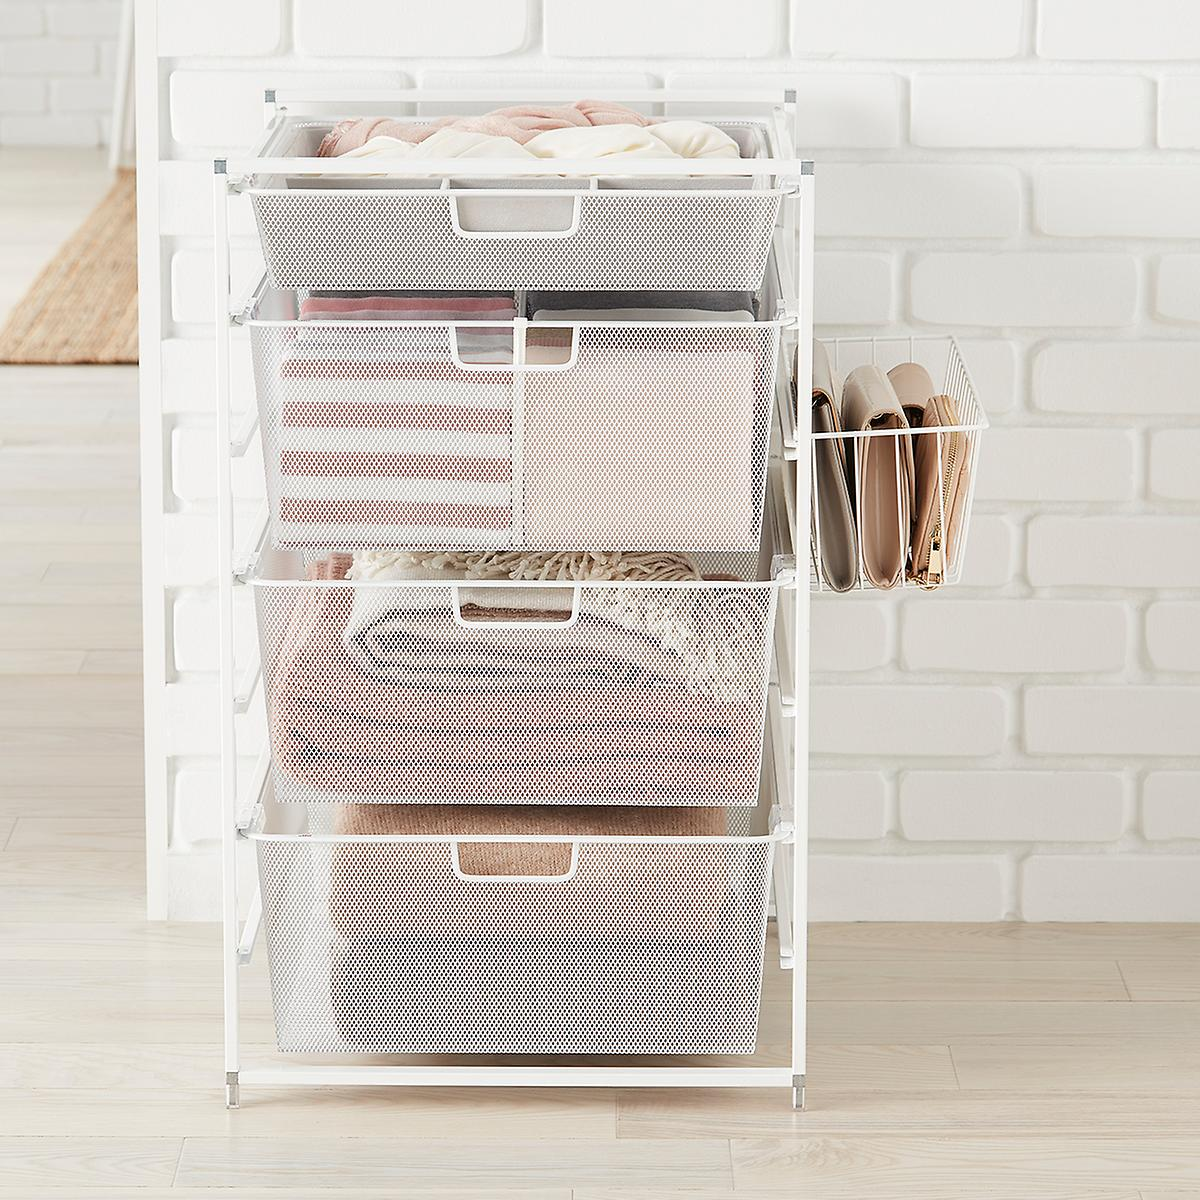 Drawers Solution & Organizers